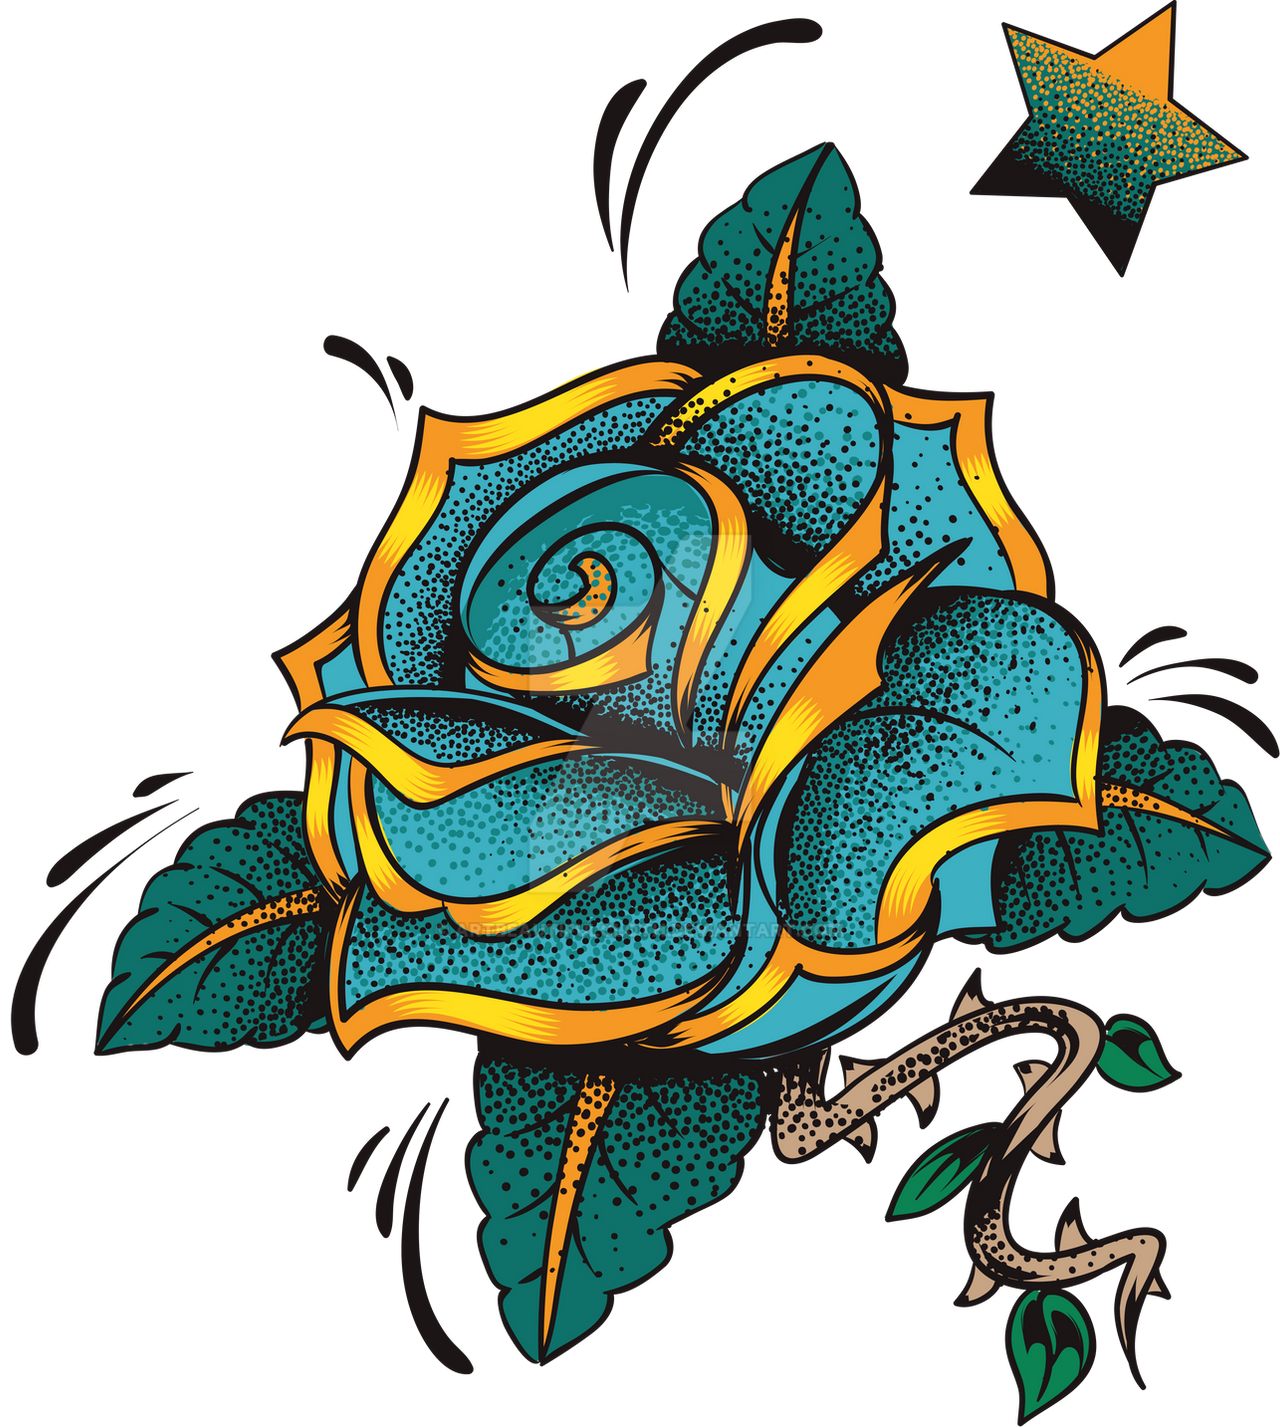 Blue Rose by artbeautifulcloth on DeviantArt